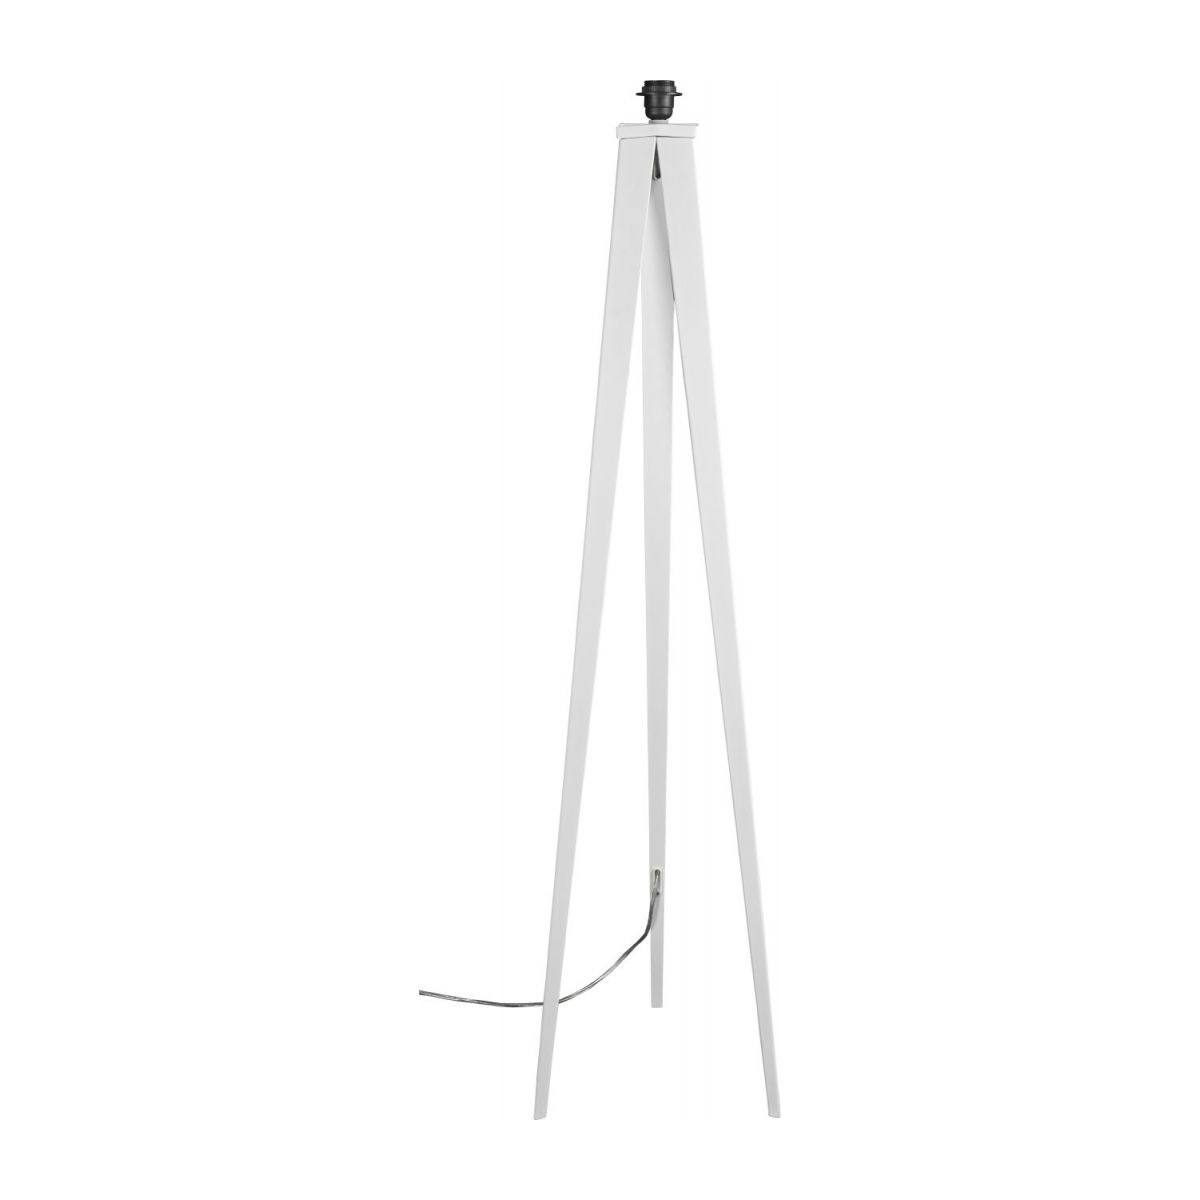 Floor lamp base made of metal, white n°1